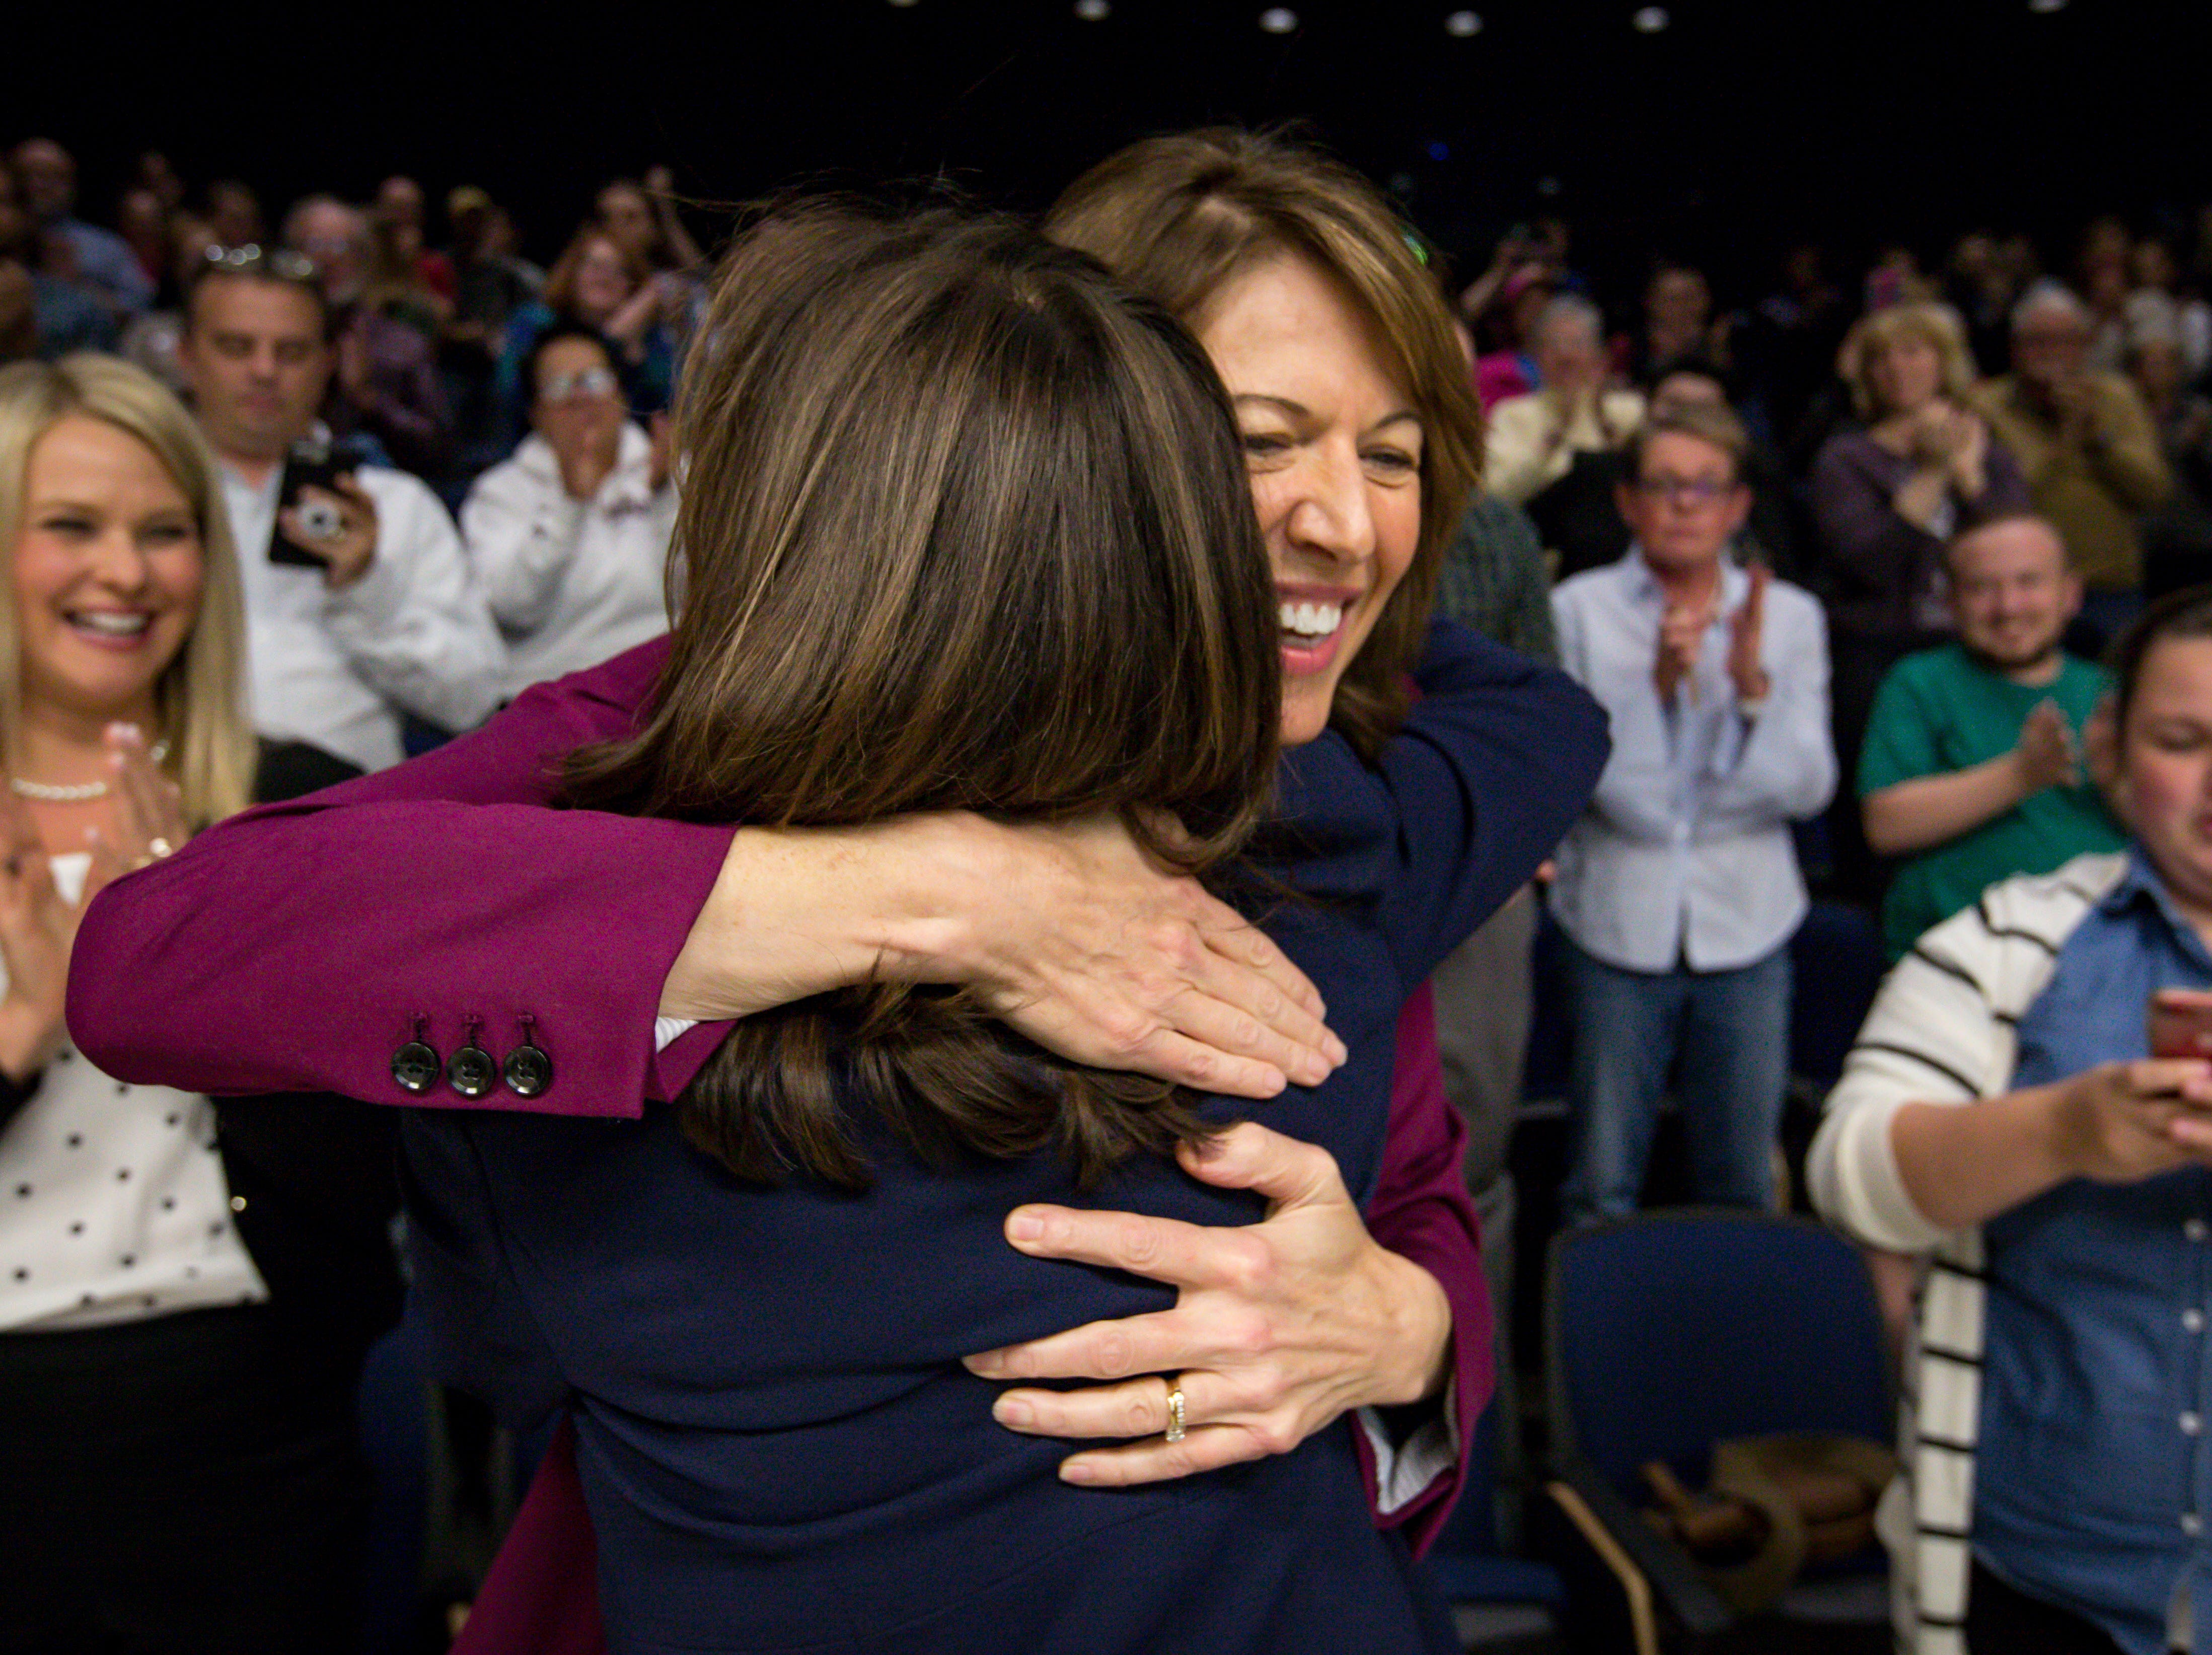 Democratic Senator Kamala Harris of California hugs Congressional candidate Cindy Axne after a DMACC Early Vote rally  Monday, Oct. 22, 2018, in Ankeny, Iowa.